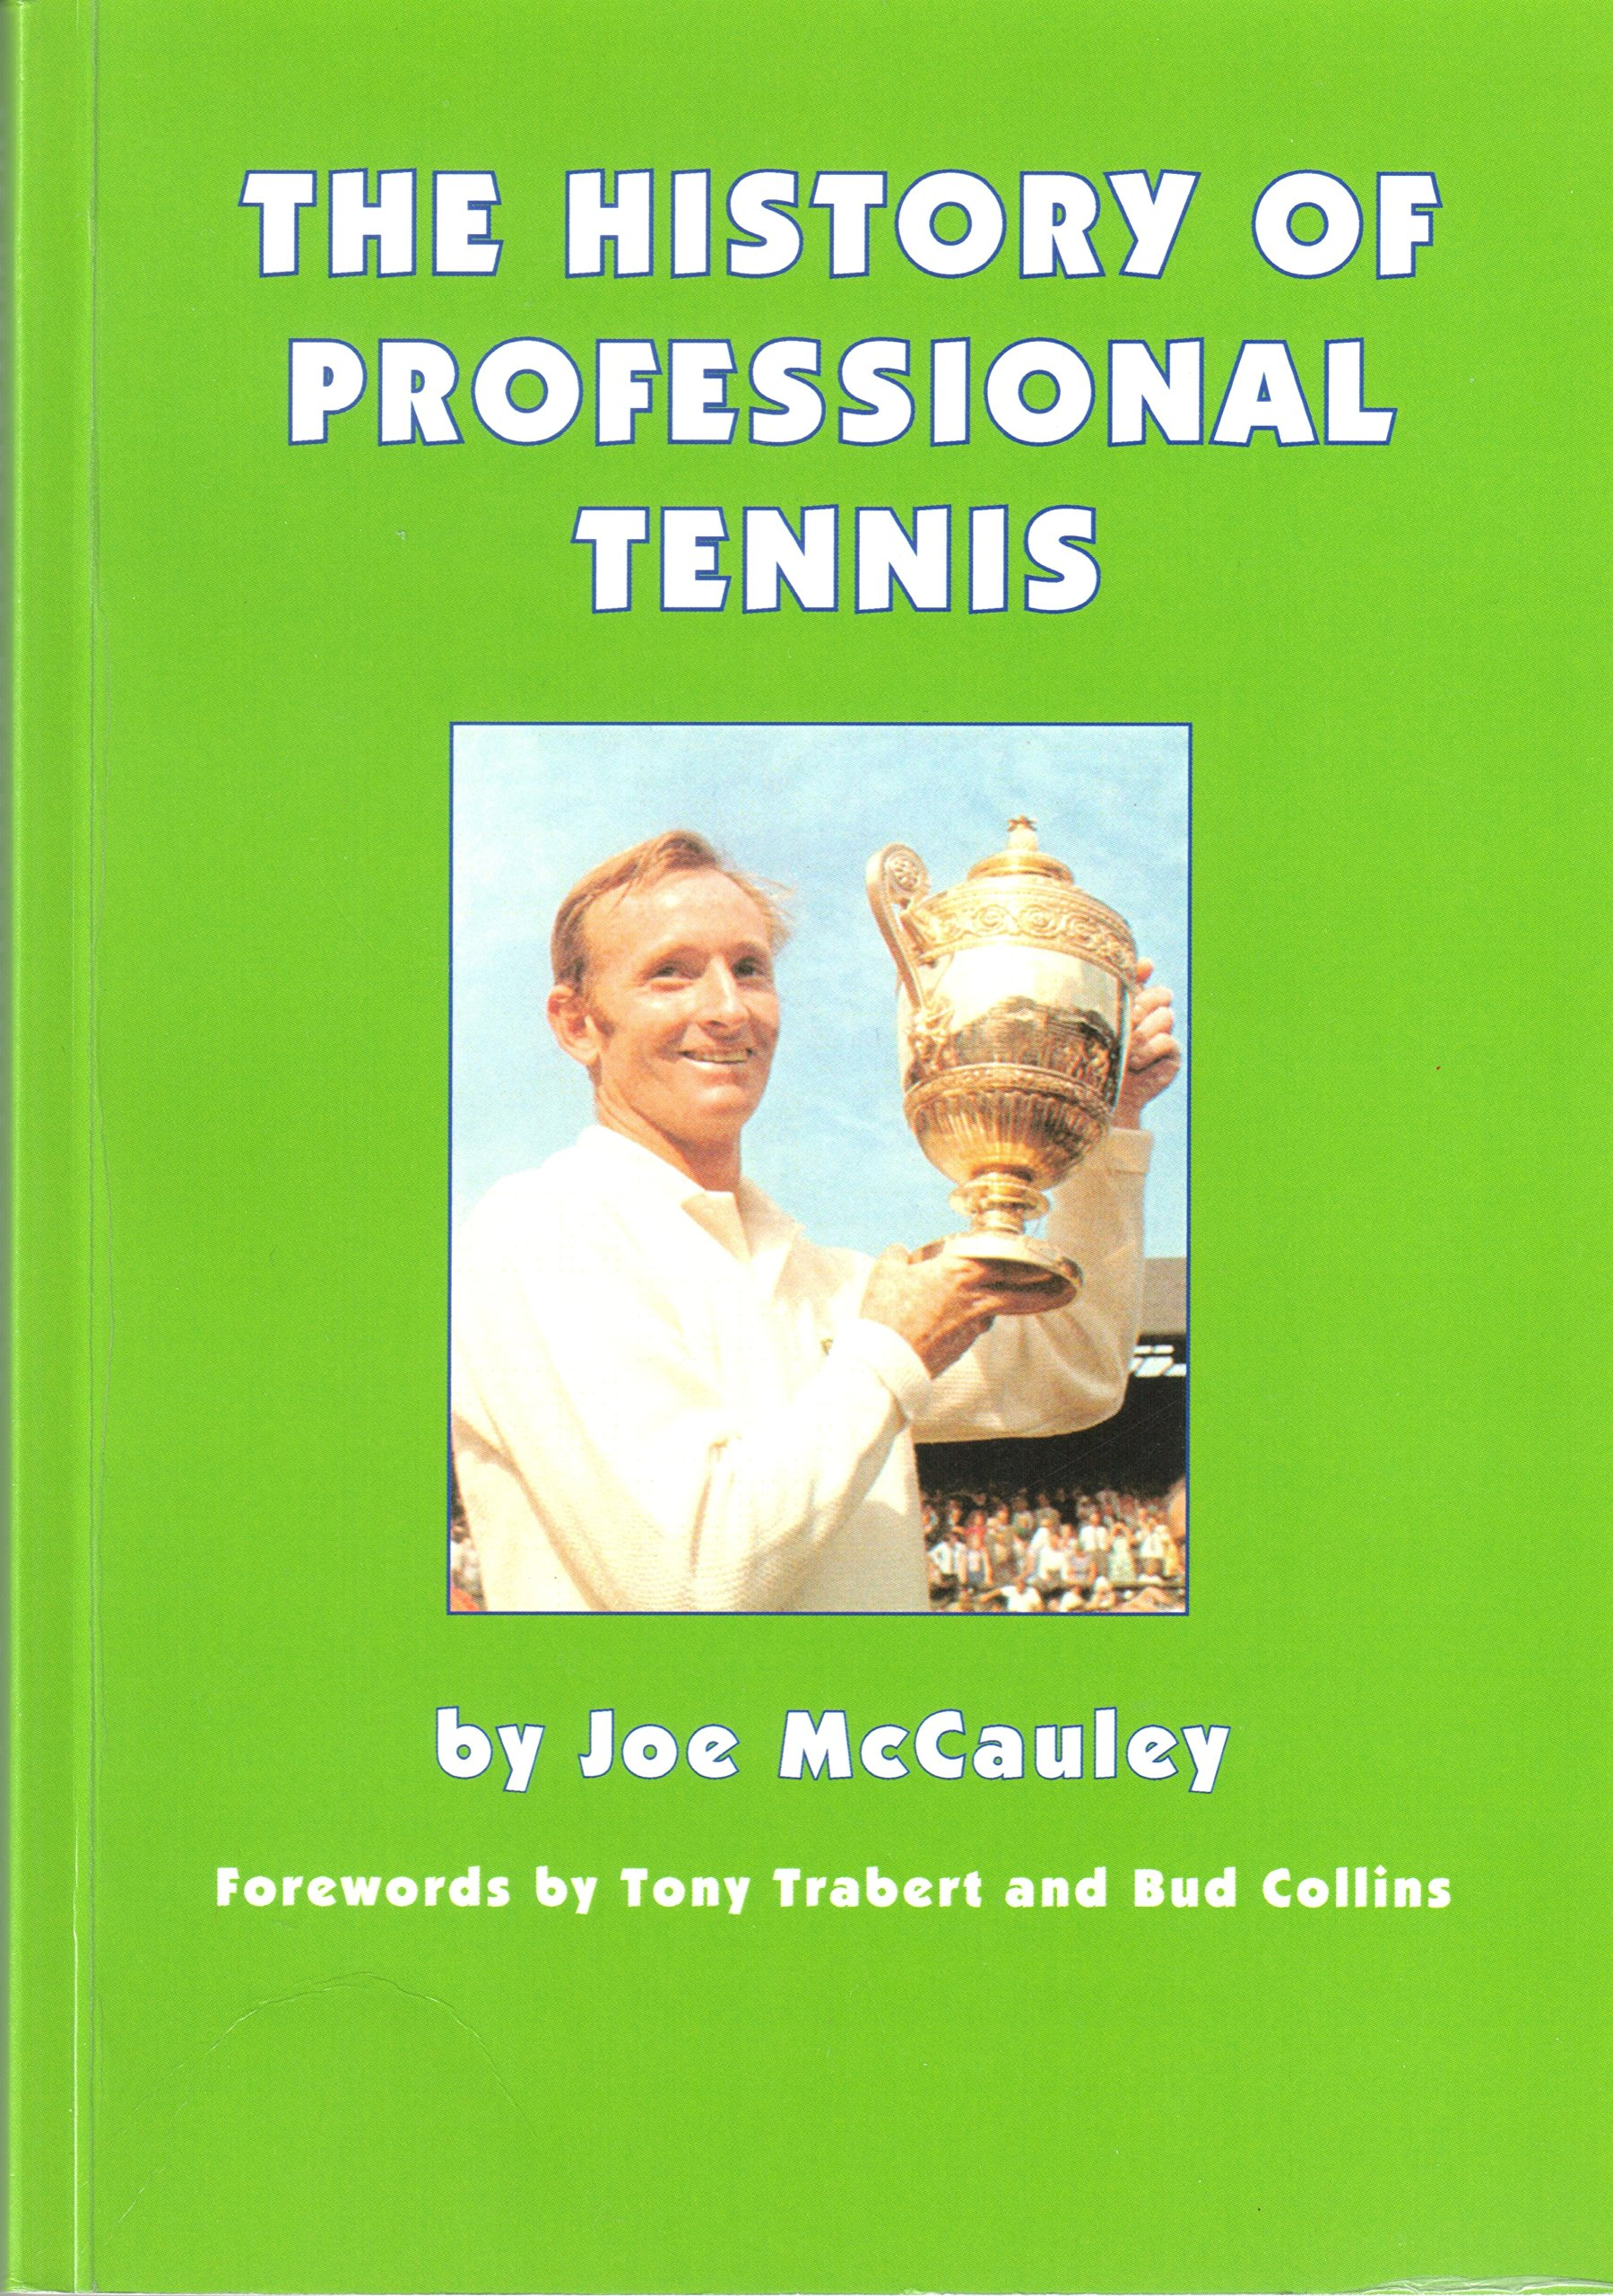 The History of Professional Tennis Amazon Joe McCauley